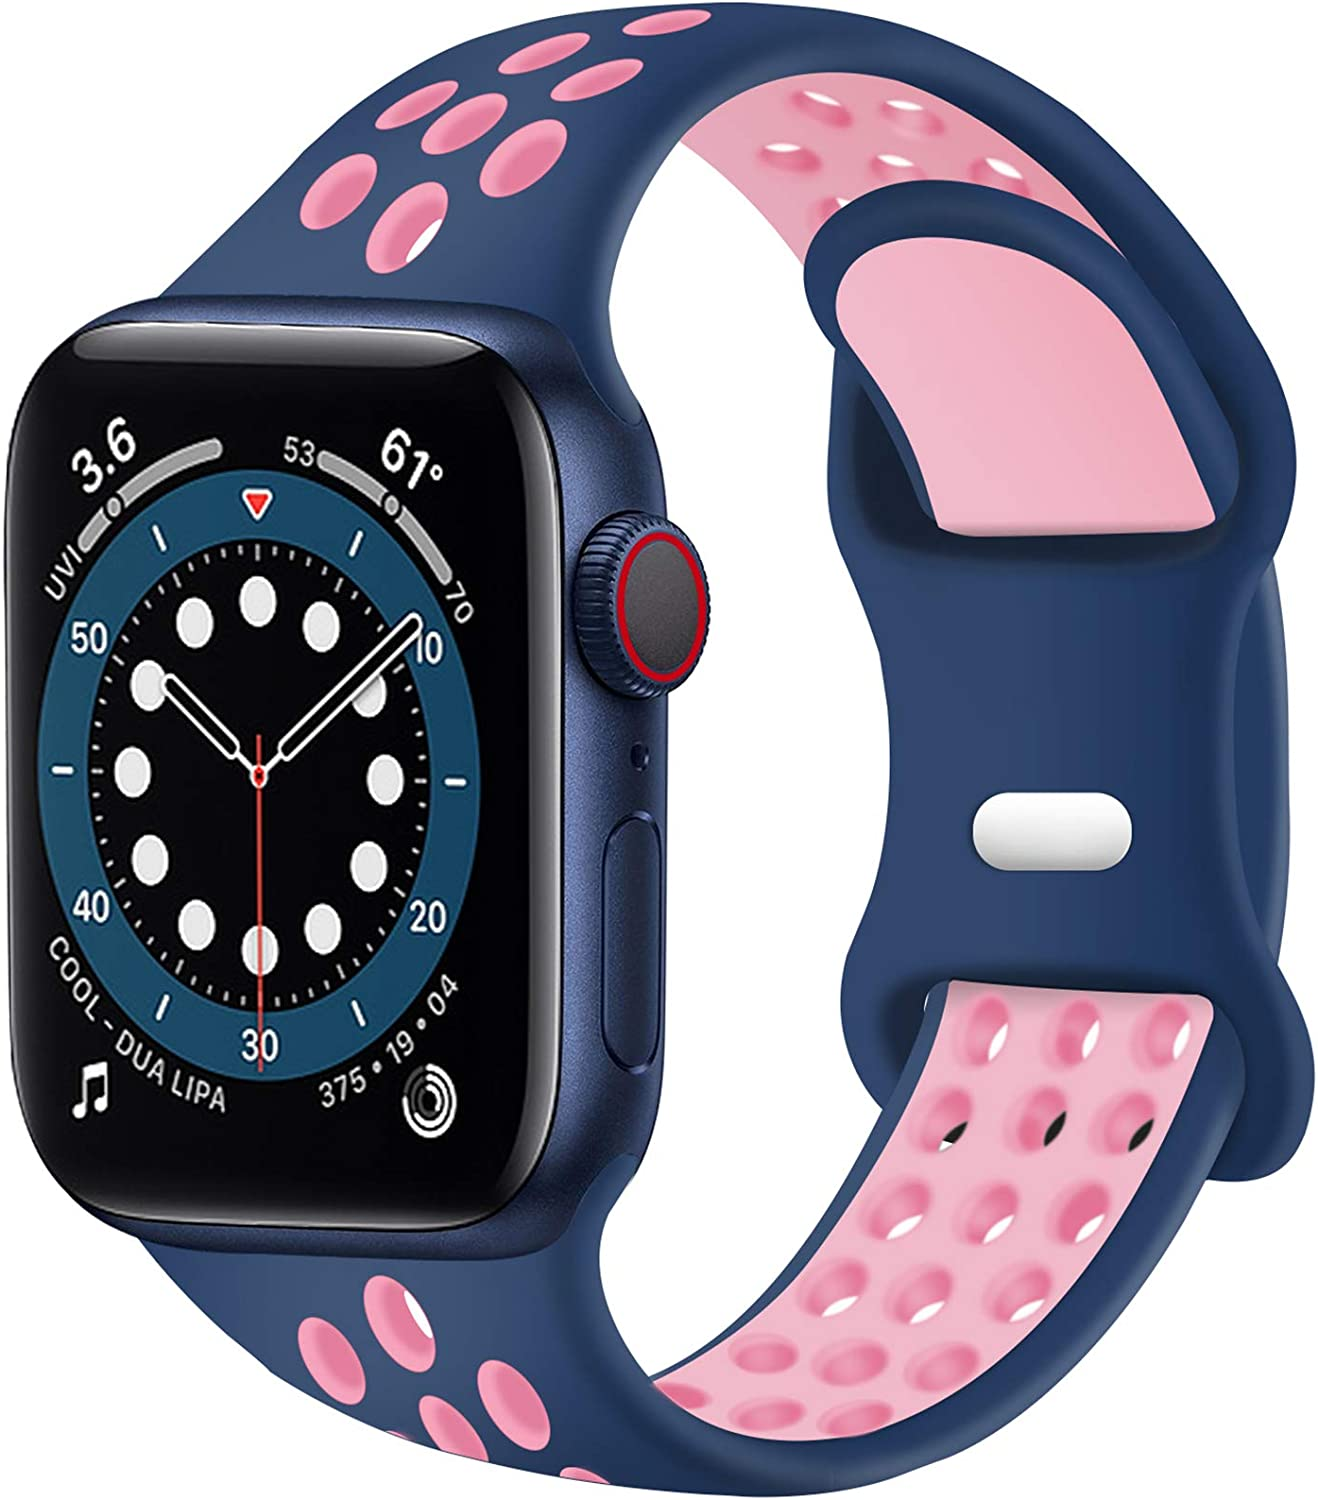 SVISVIPA Sport Bands Compatible for Apple Watch Bands 38mm 40mm 41mm,Breathable Soft Silicone Sport Women Men Replacement Strap Compatible with iWatch SE & Series 7/6/5/4/3/2/1,Blue Pink